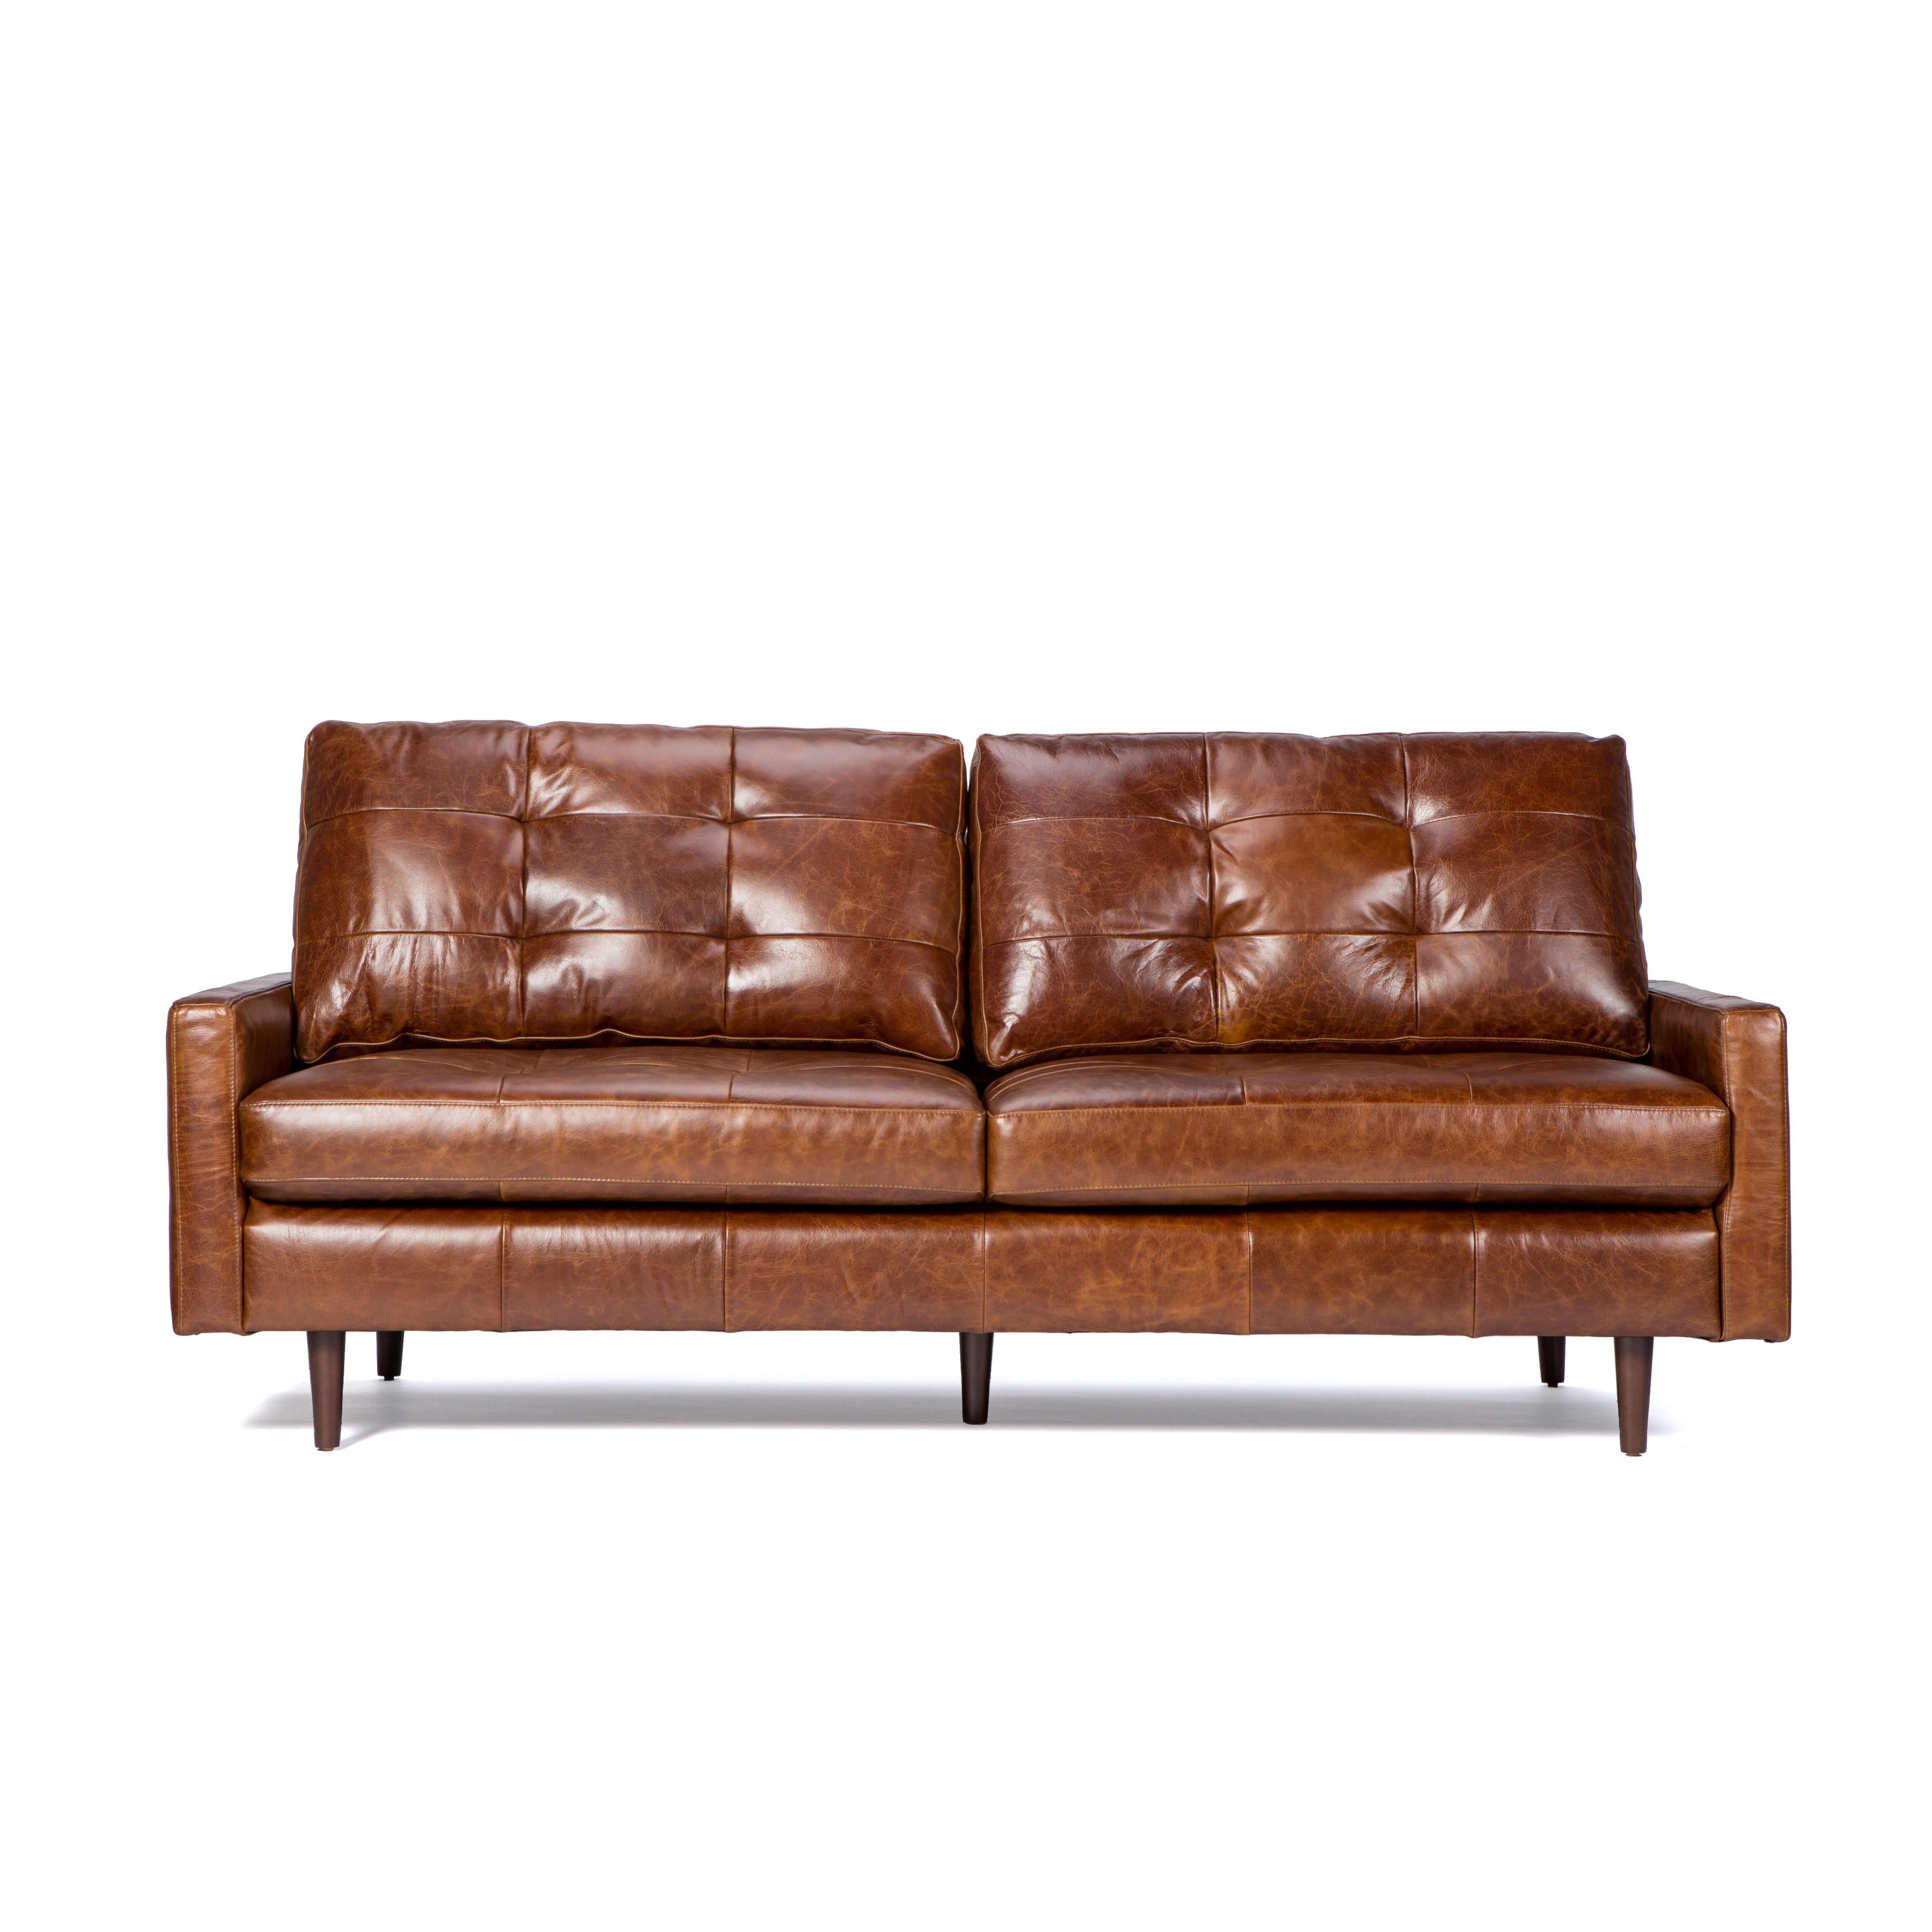 Andrew Leather Sofa Chairs Regarding 2019 Leather Sofa With Tufted Back Cushion – Andrew – Zillo + Hutch (View 4 of 20)